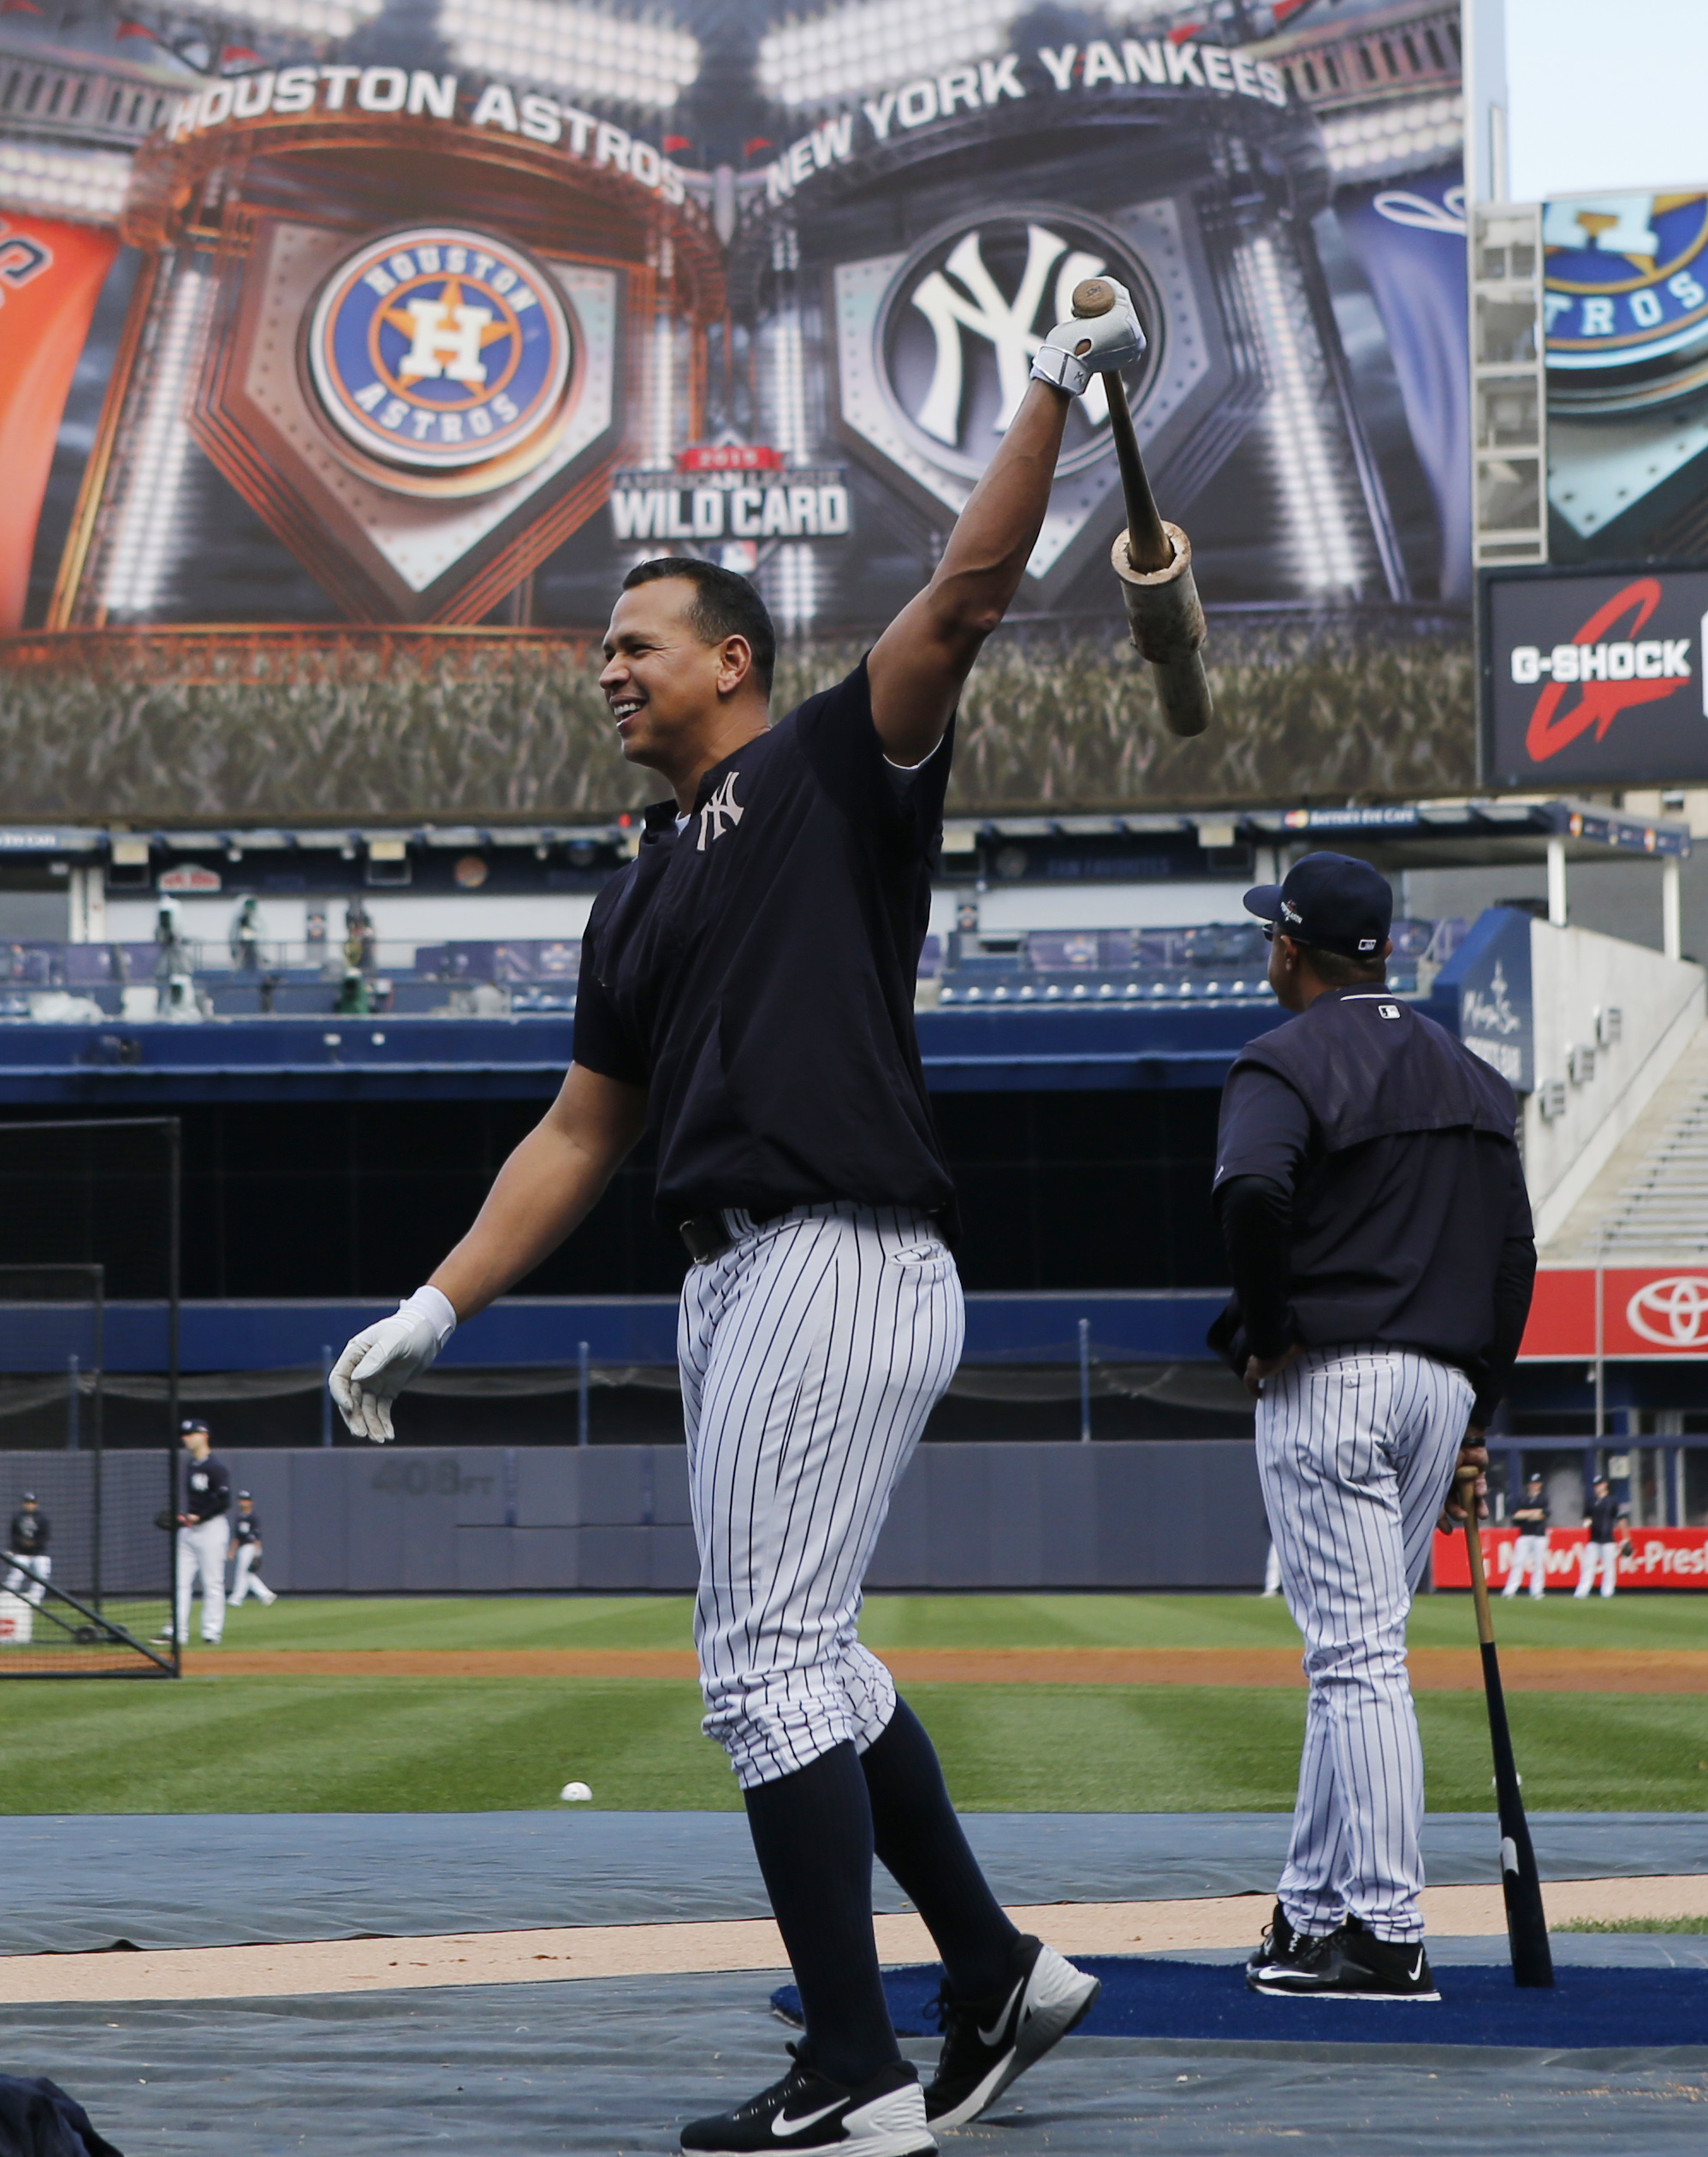 New York Yankees designated hitter Alex Rodriguez swings a weighted bat during a workout at Yankee Stadium in New York, Monday, Oct. 5, 2015, for an American League Wild Card baseball game against the Houston Astros on Tuesday. (AP Photo/Kathy Willens)